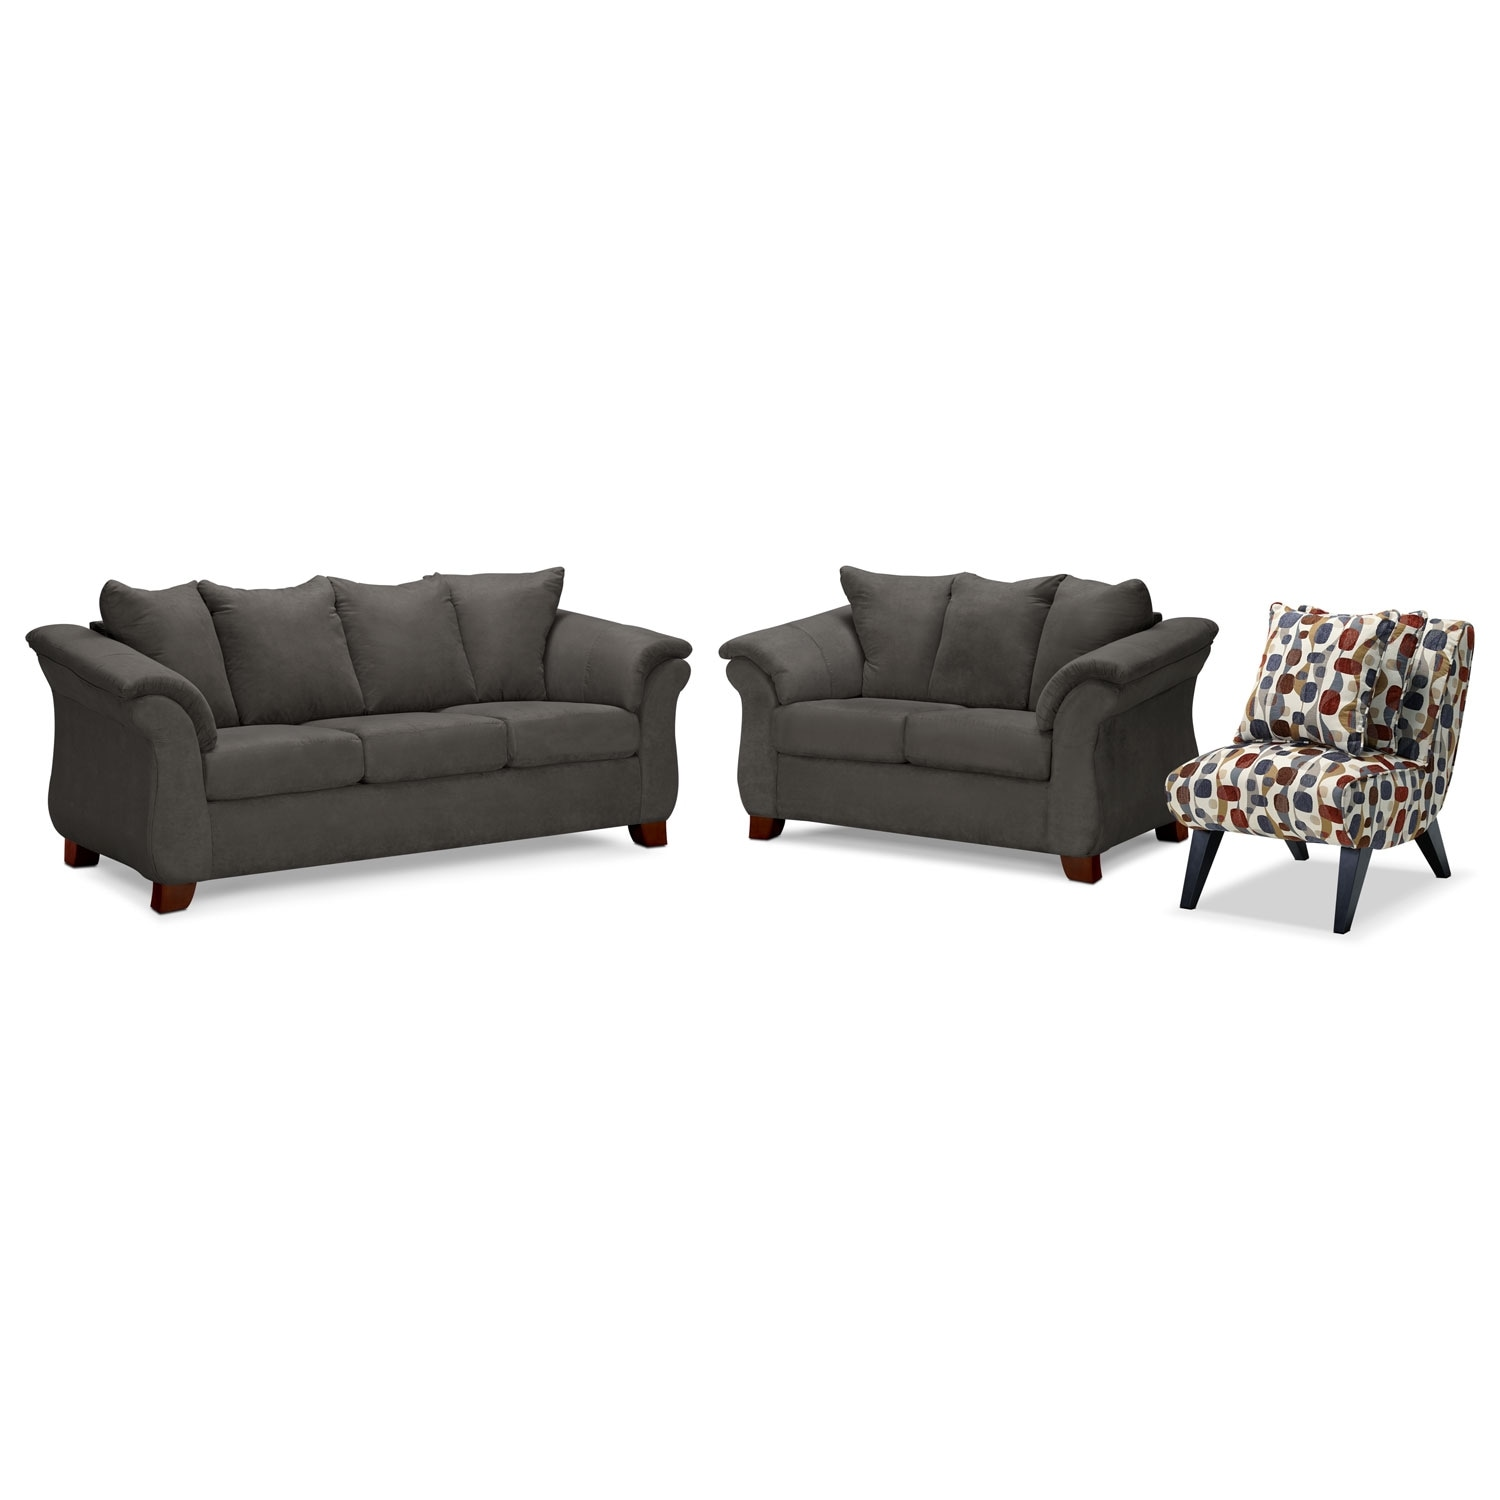 [Adrian Graphite 3 Pc. Living Room w/ Accent Chair]